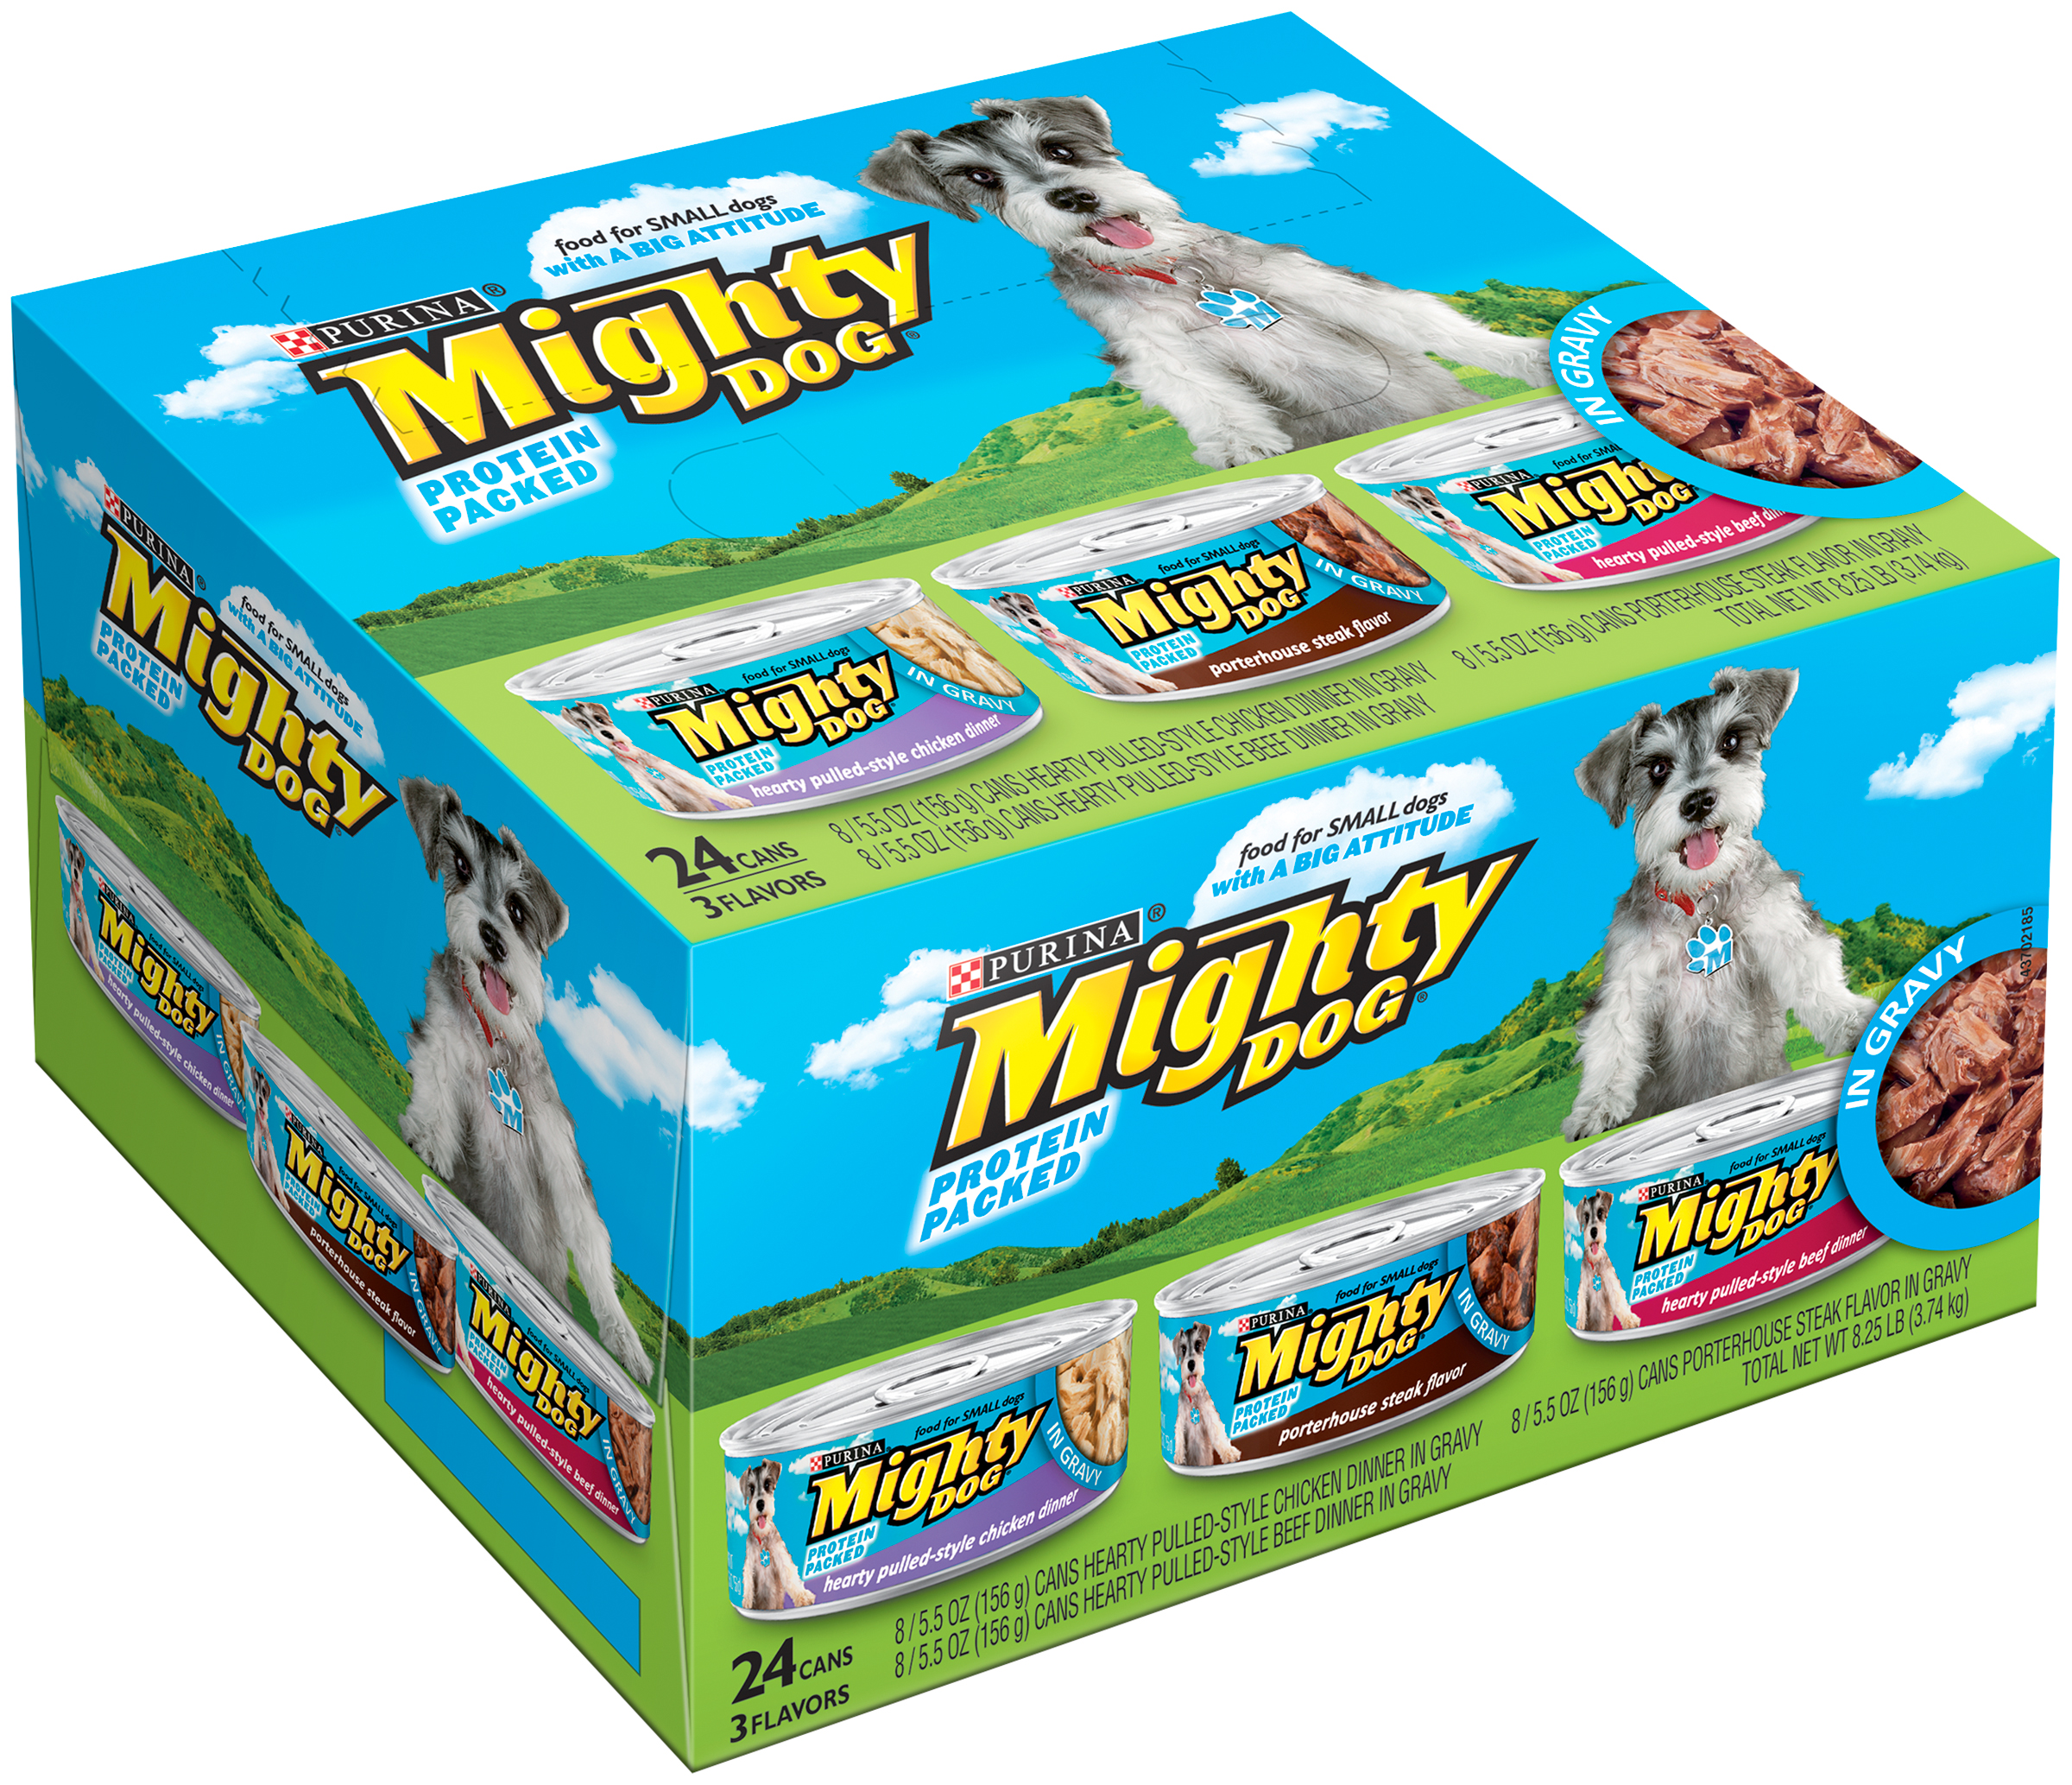 Purina Mighty Dog Hearty Pulled-Style Chicken Dinner in Gravy/Hearty Pulled-Style Beef Dinner in Gravy/Porterhouse Steak Flavor in Gravy Dog Food Variety Pack 12-5.5 oz. Cans